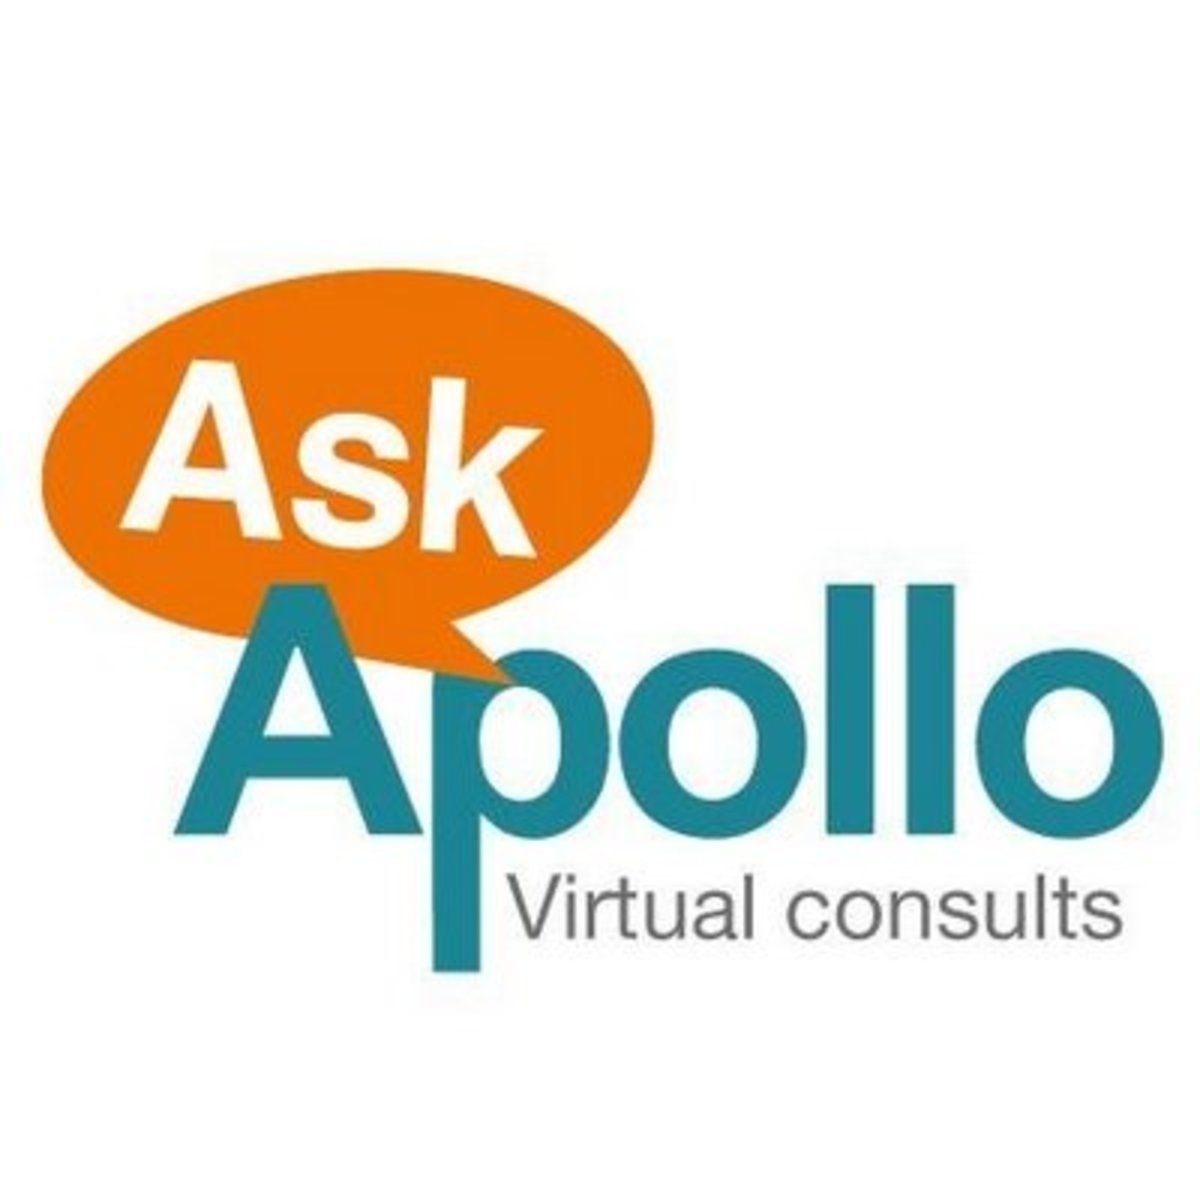 Ask Apollo virtual healthcare consultation service logo by Jayeshsan